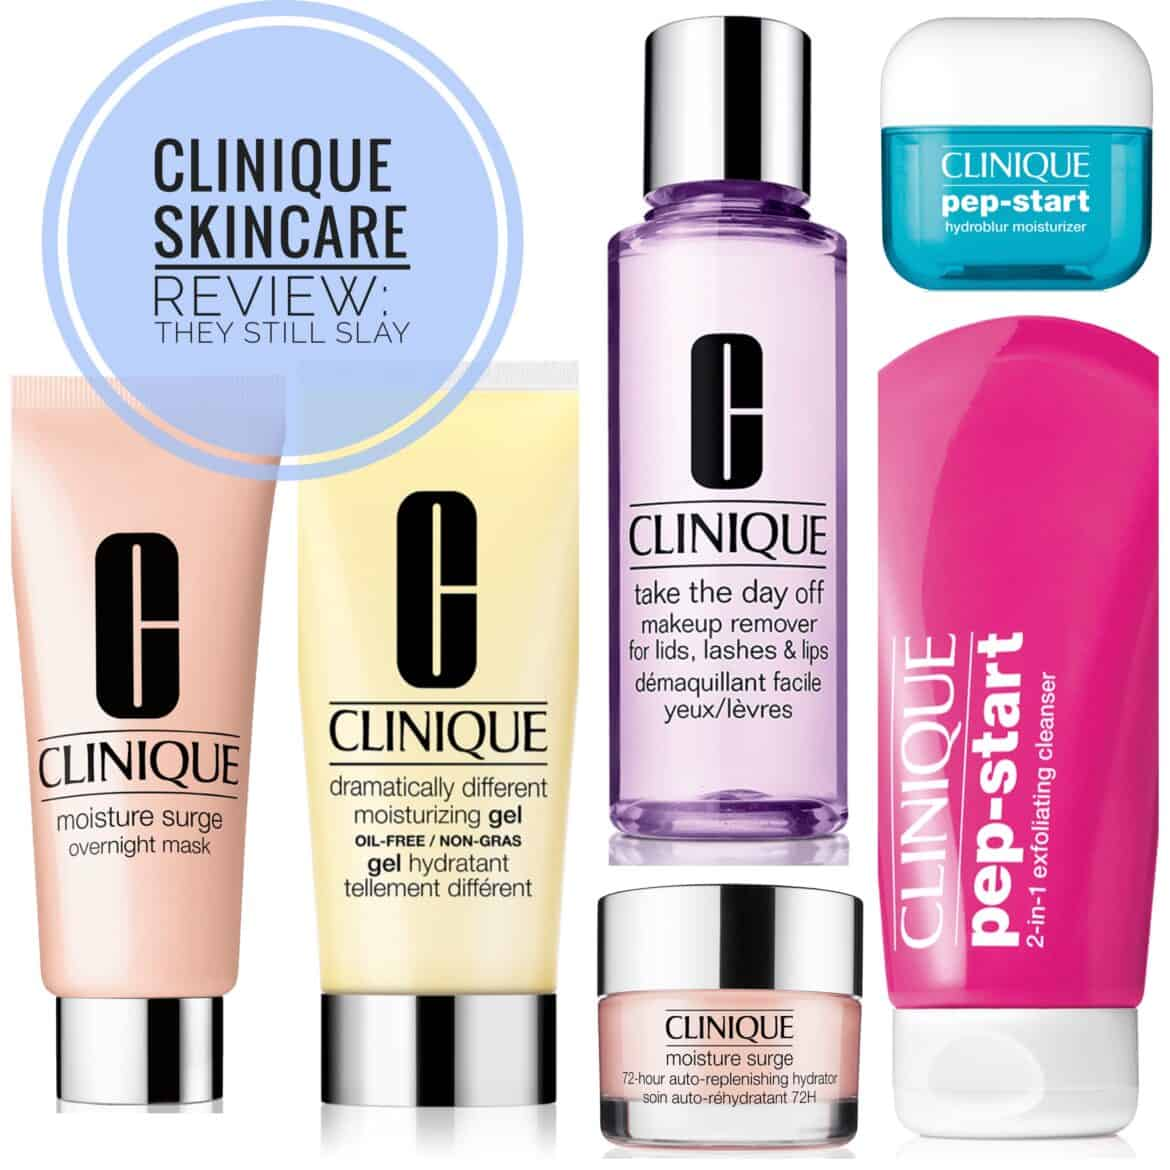 Clinique Skincare review